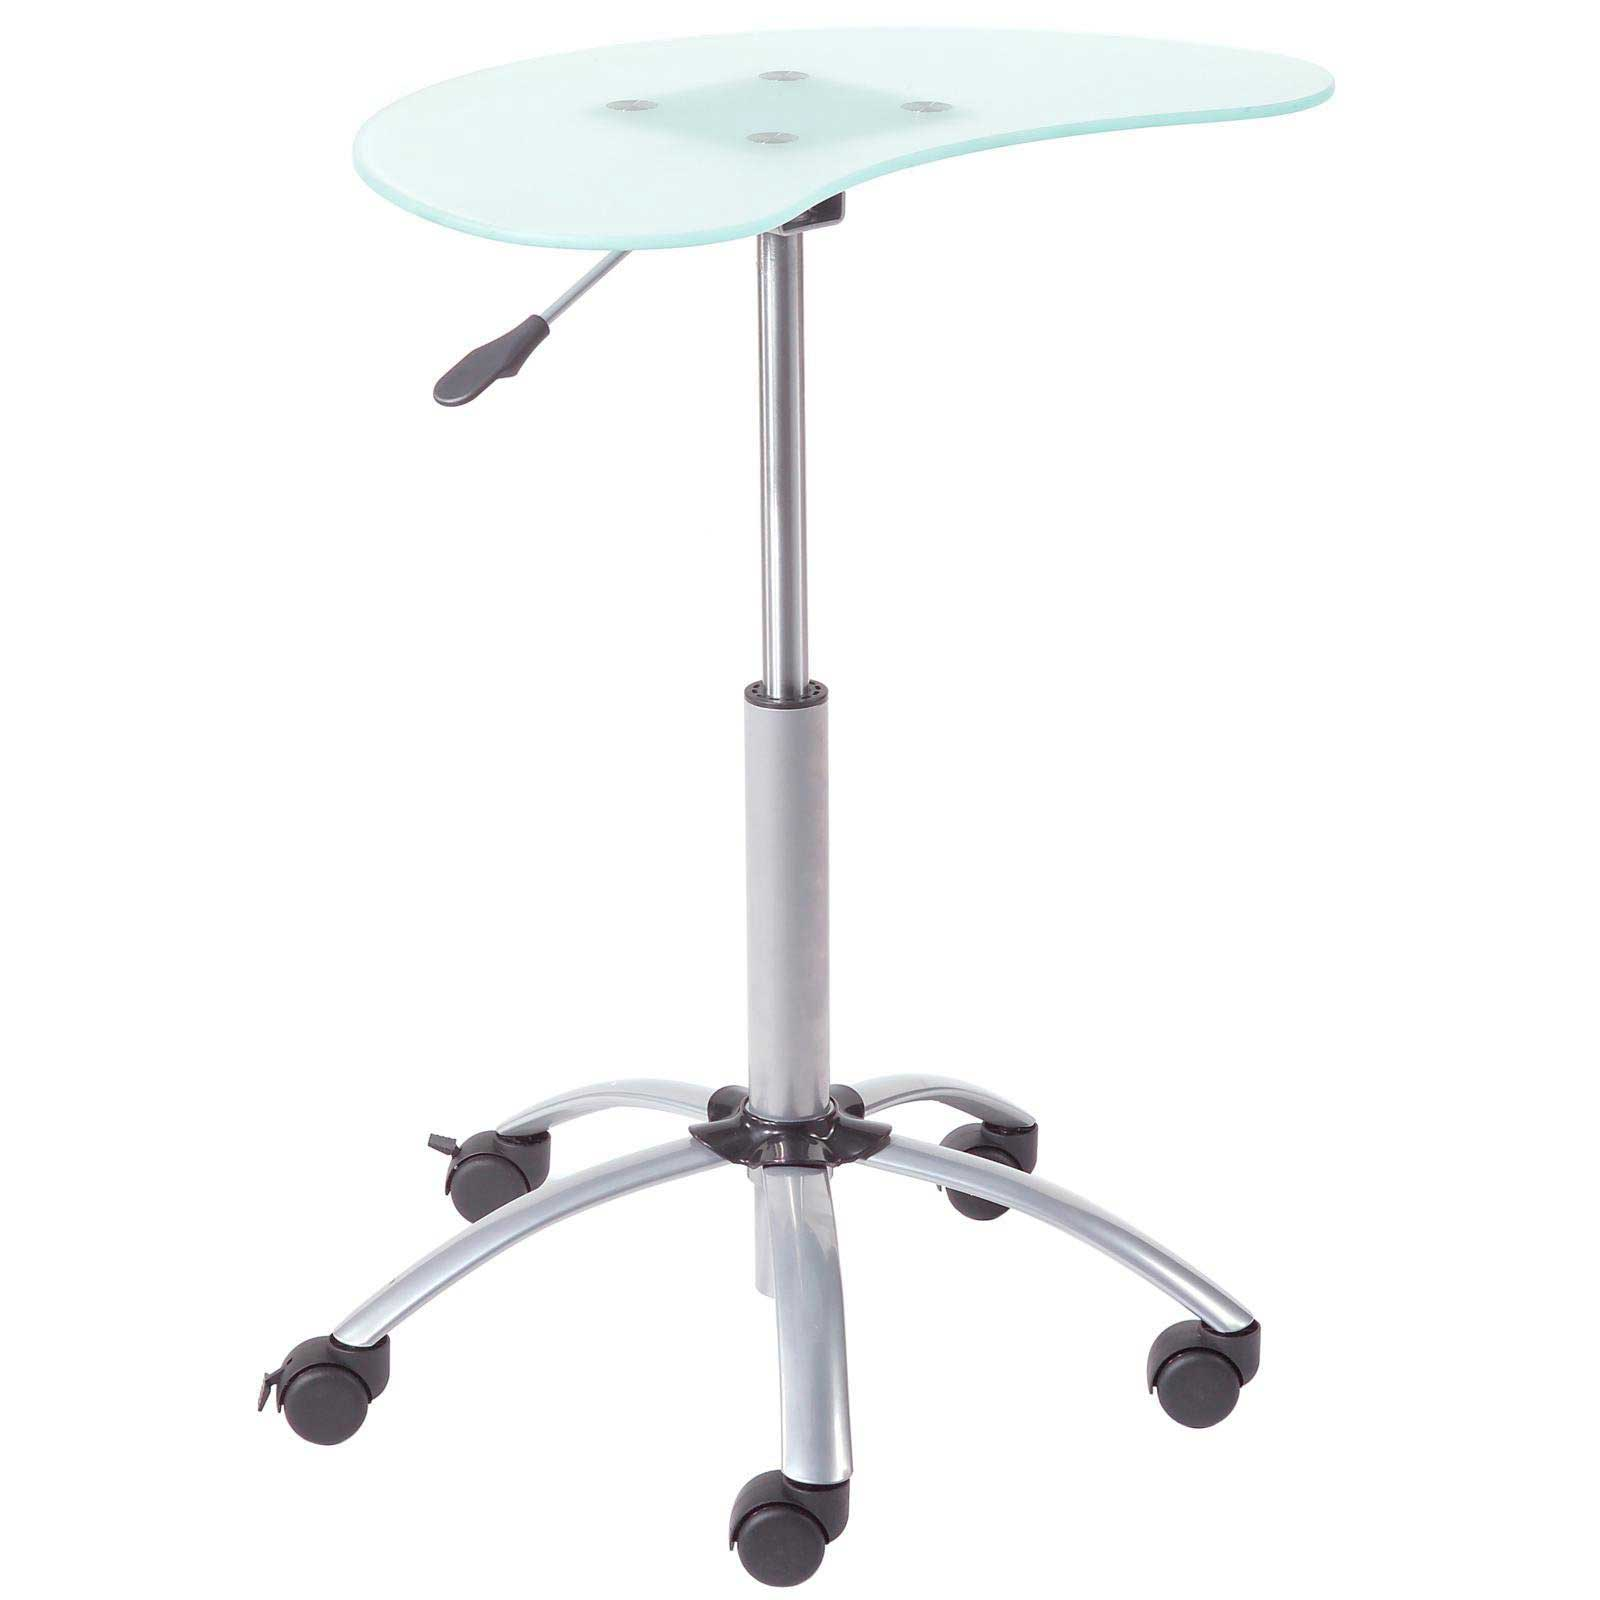 Malcom Adjustable Height Portable Computer Stands